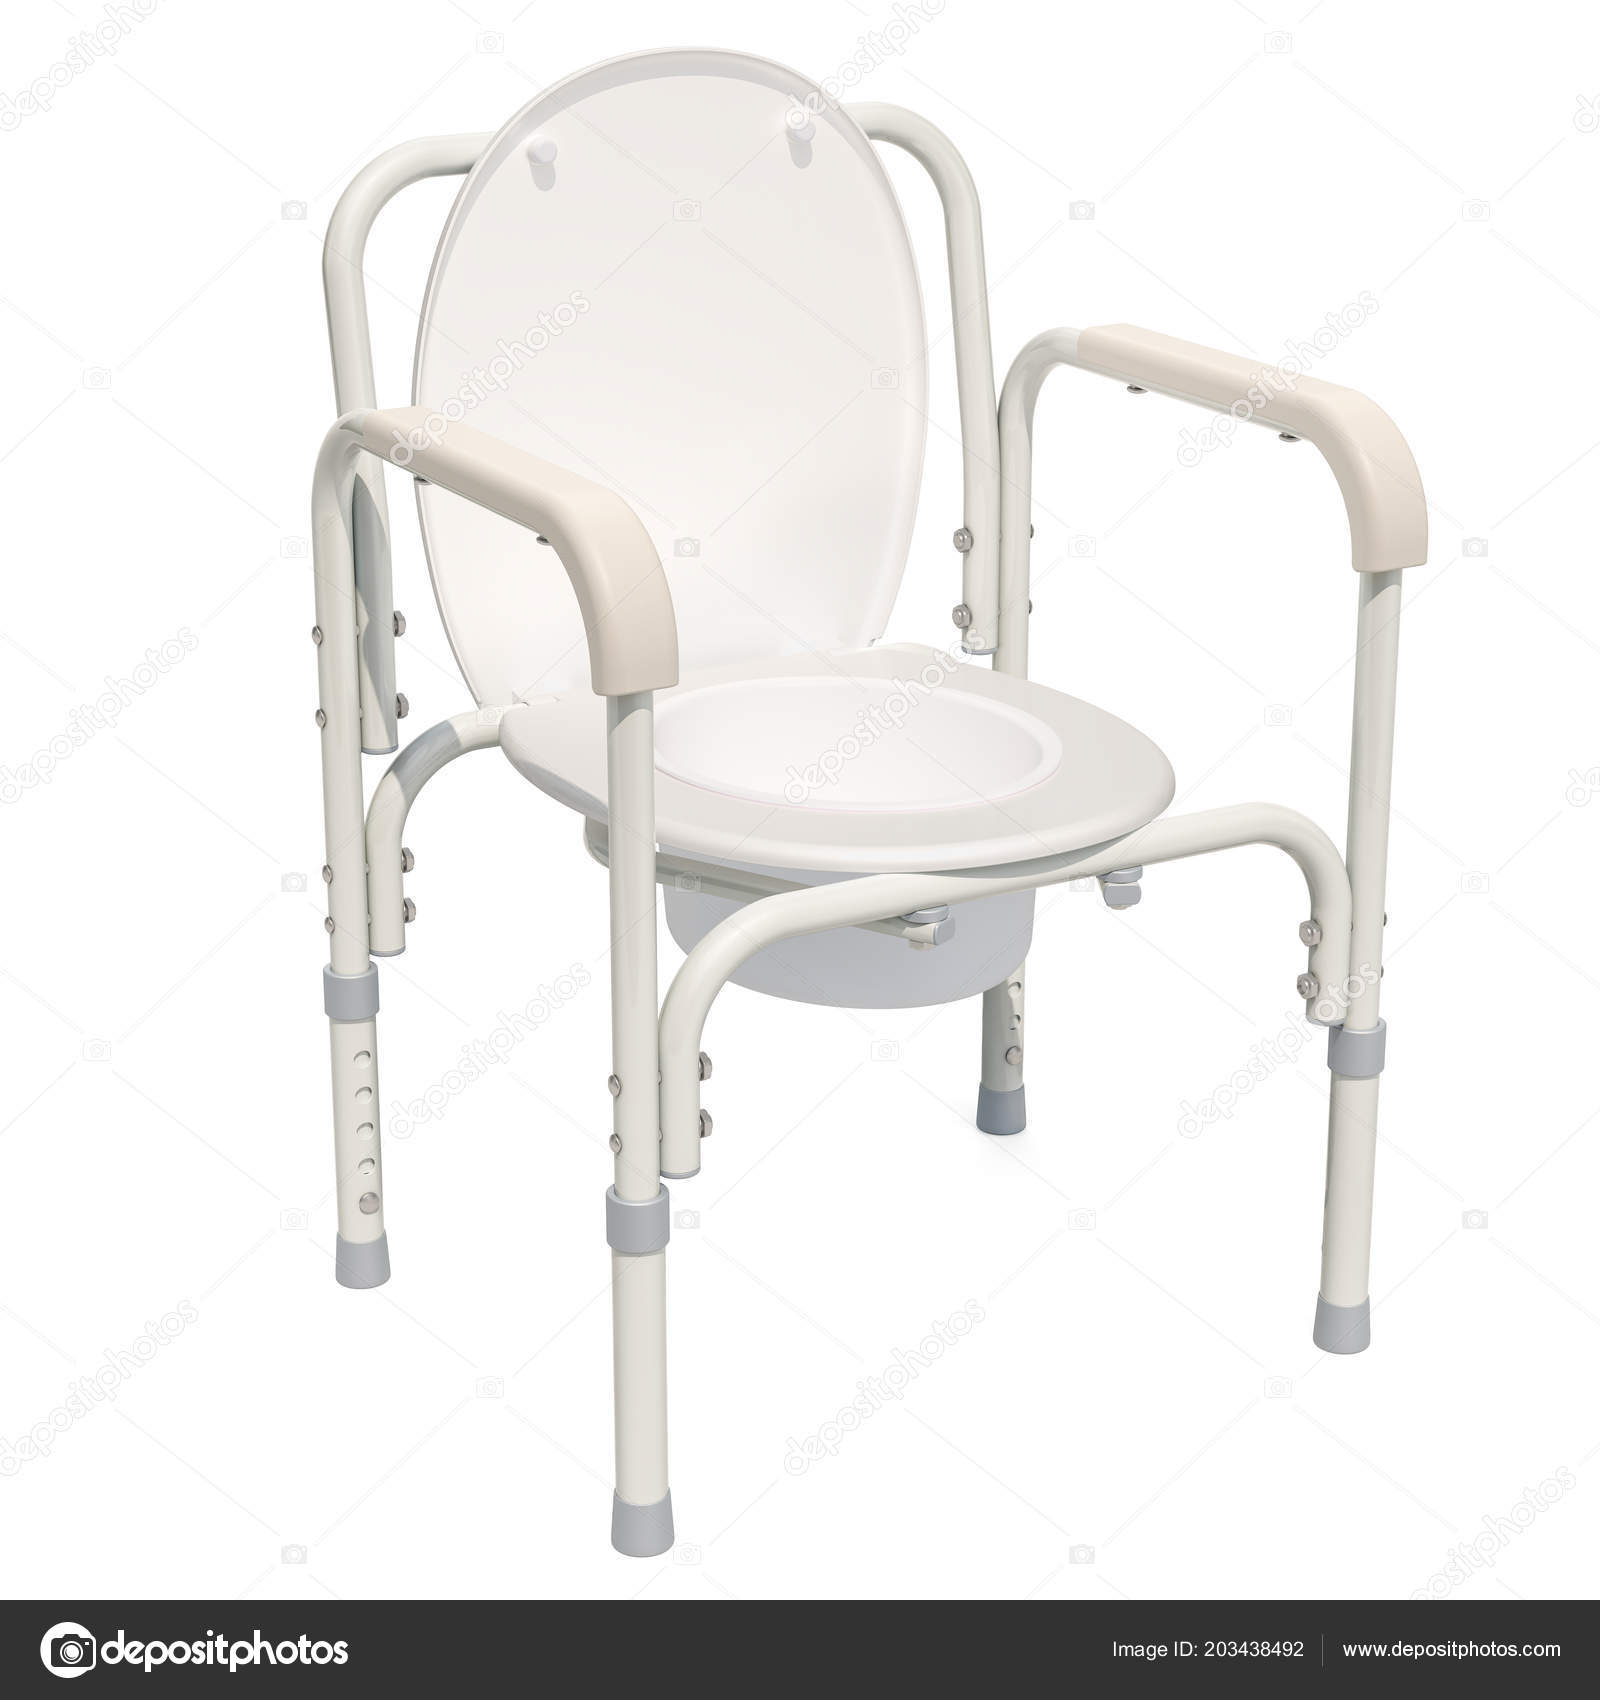 Handicap Portable Toilet Chair Rendering Isolated White Background ...